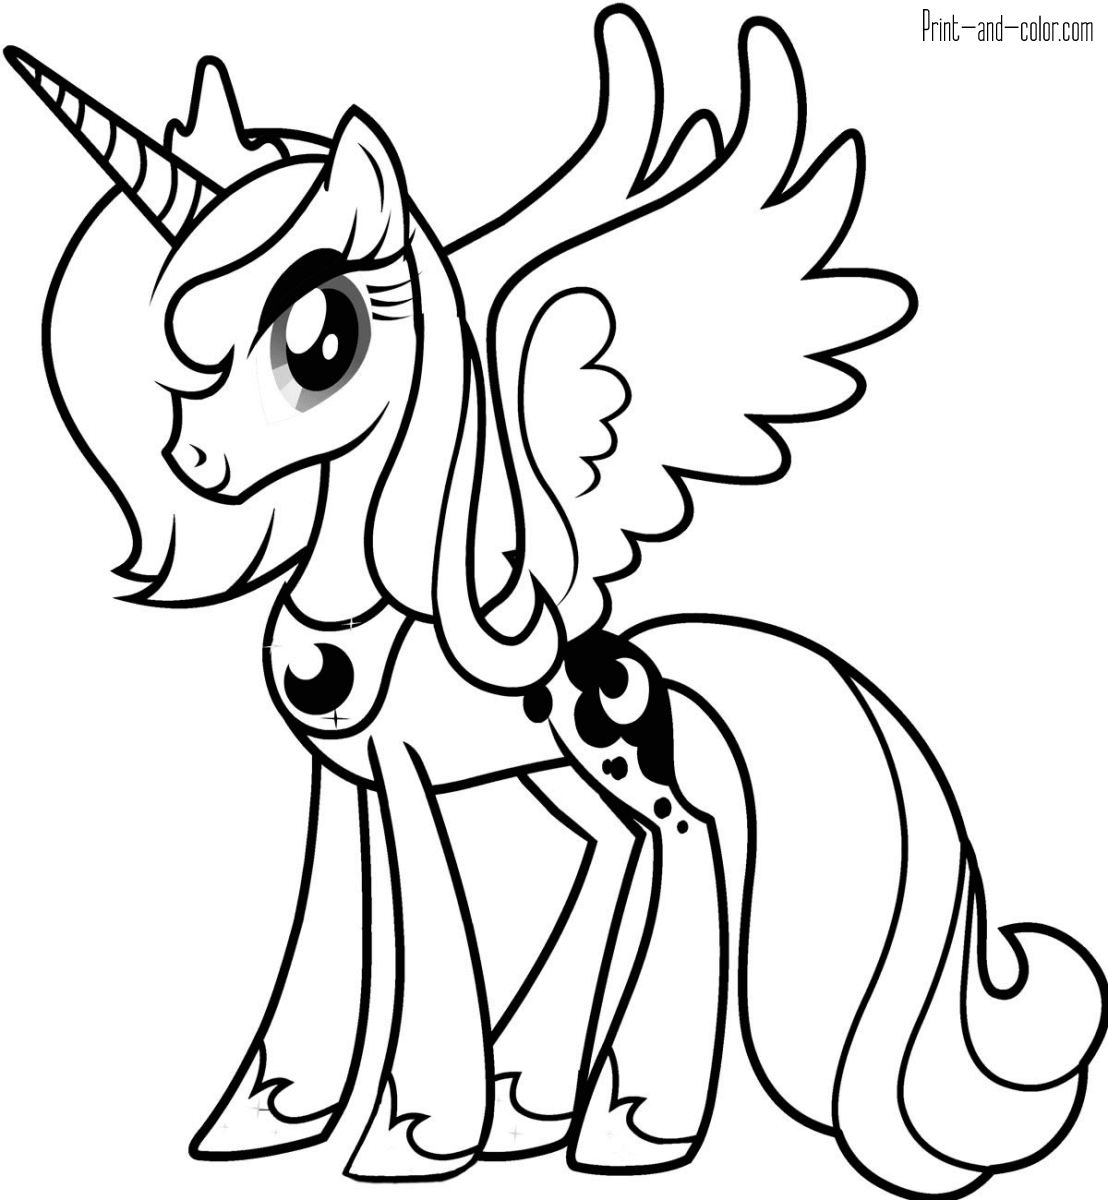 colouring pages little pony my little pony coloring pages print and colorcom colouring little pages pony